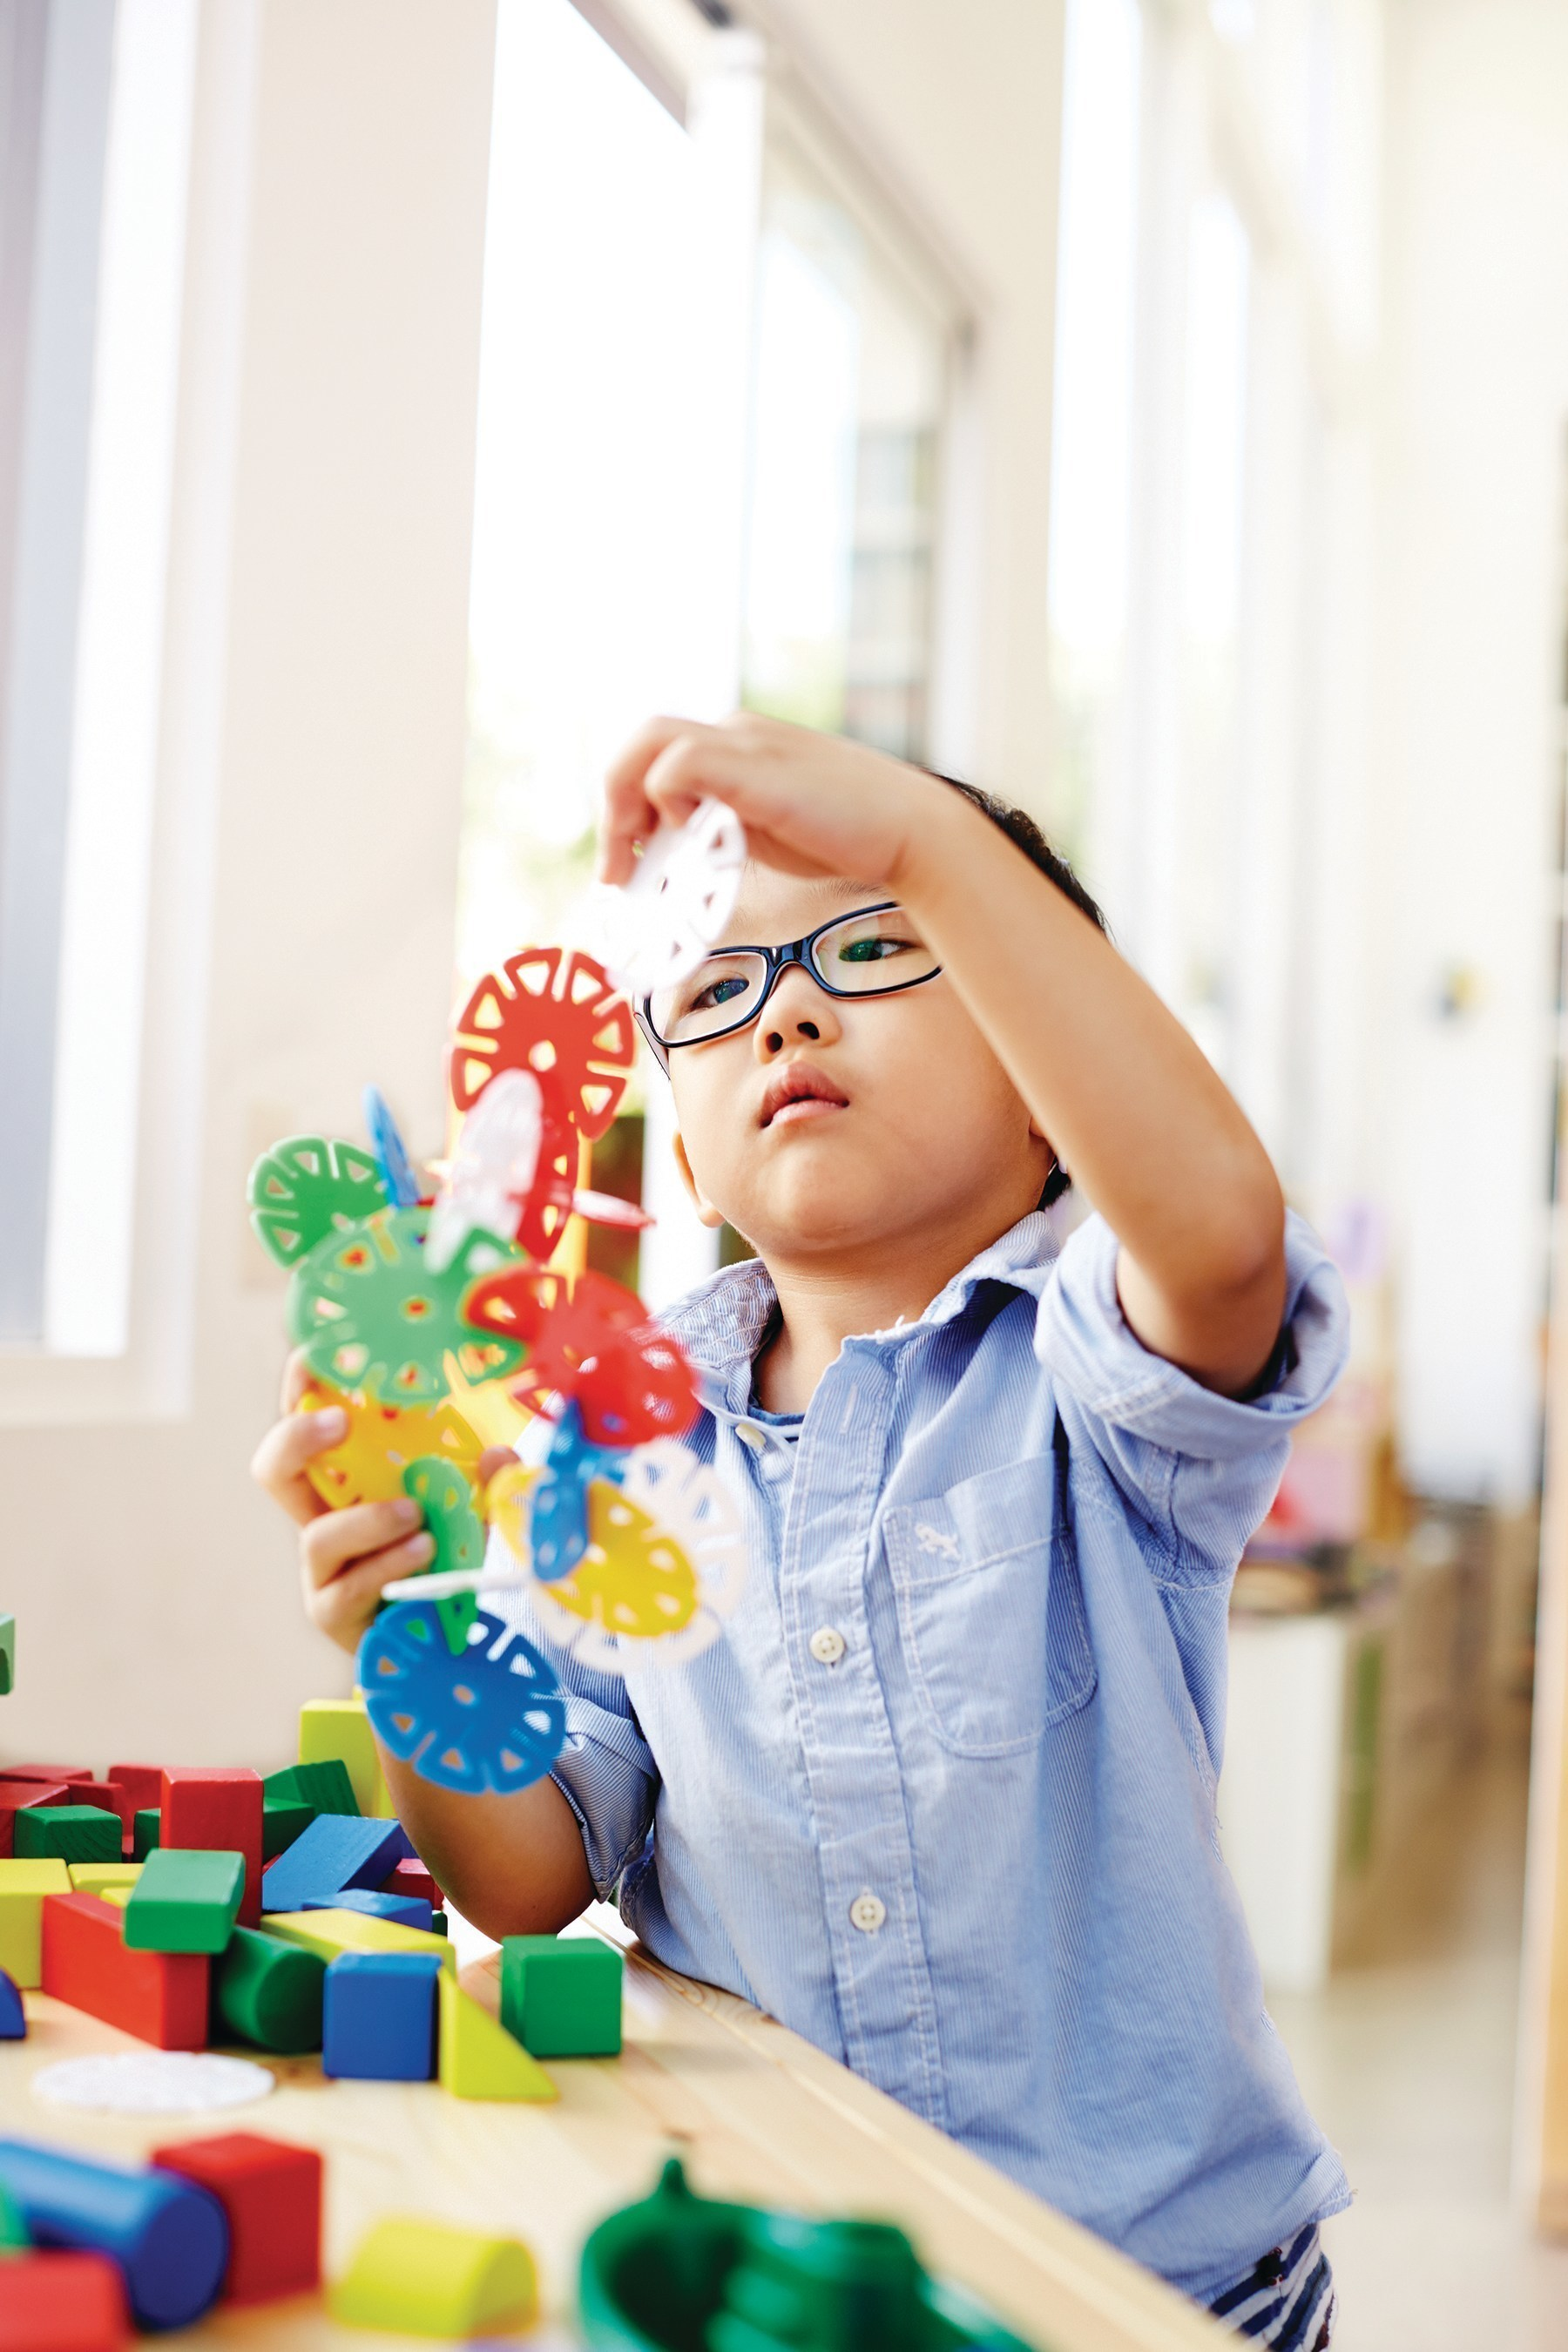 Primrose Schools help build literacy, math and critical thinking skills for children through developmentally-appropriate experiences.